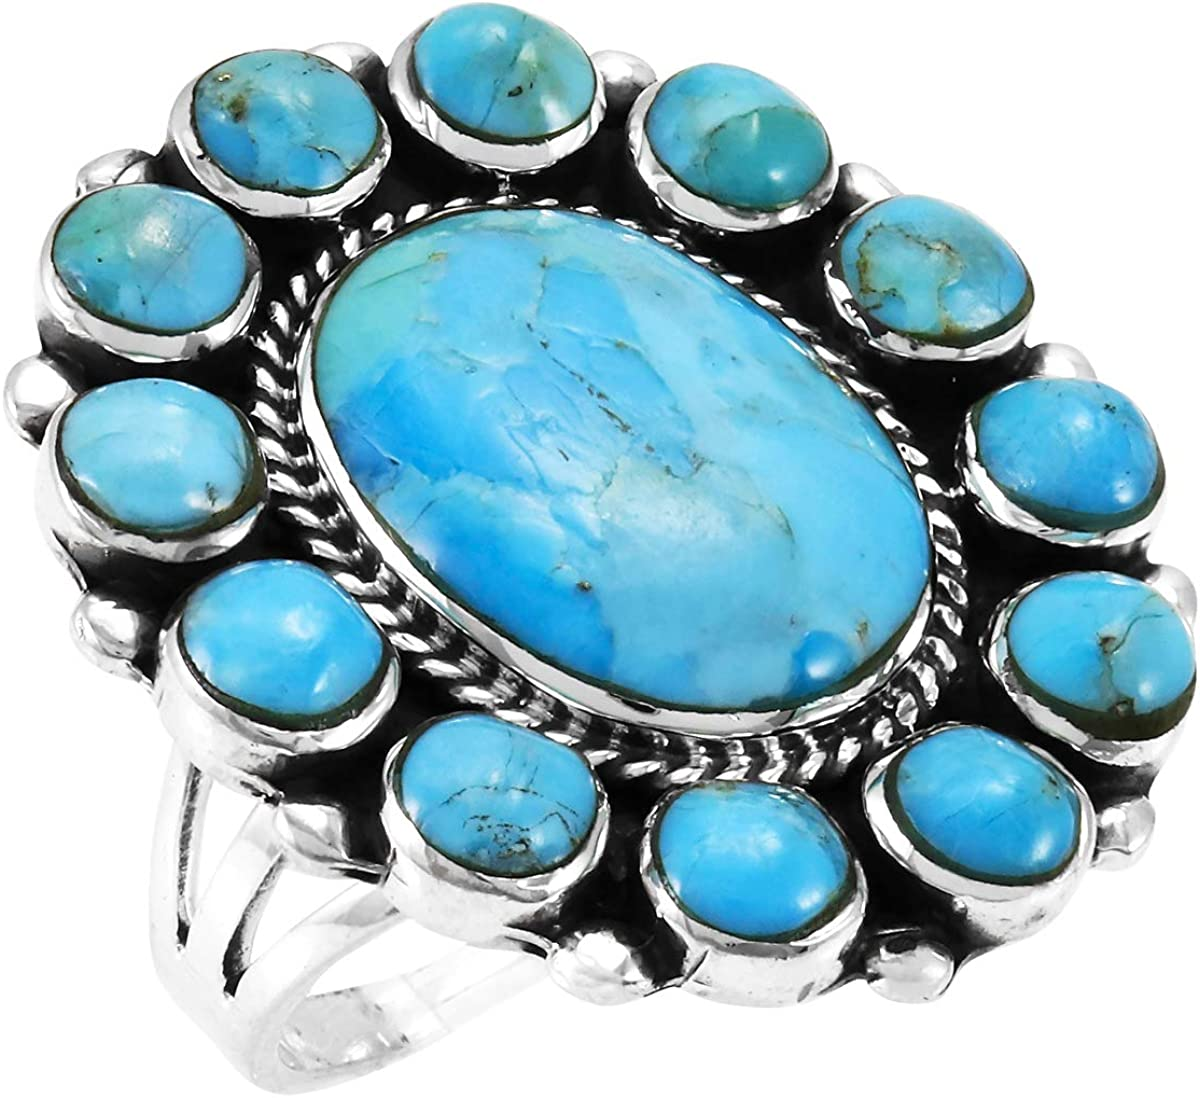 Turquoise Ring low-pricing Sterling Kansas City Mall Silver 925 Genuine to 1 Size 6 Gemstones